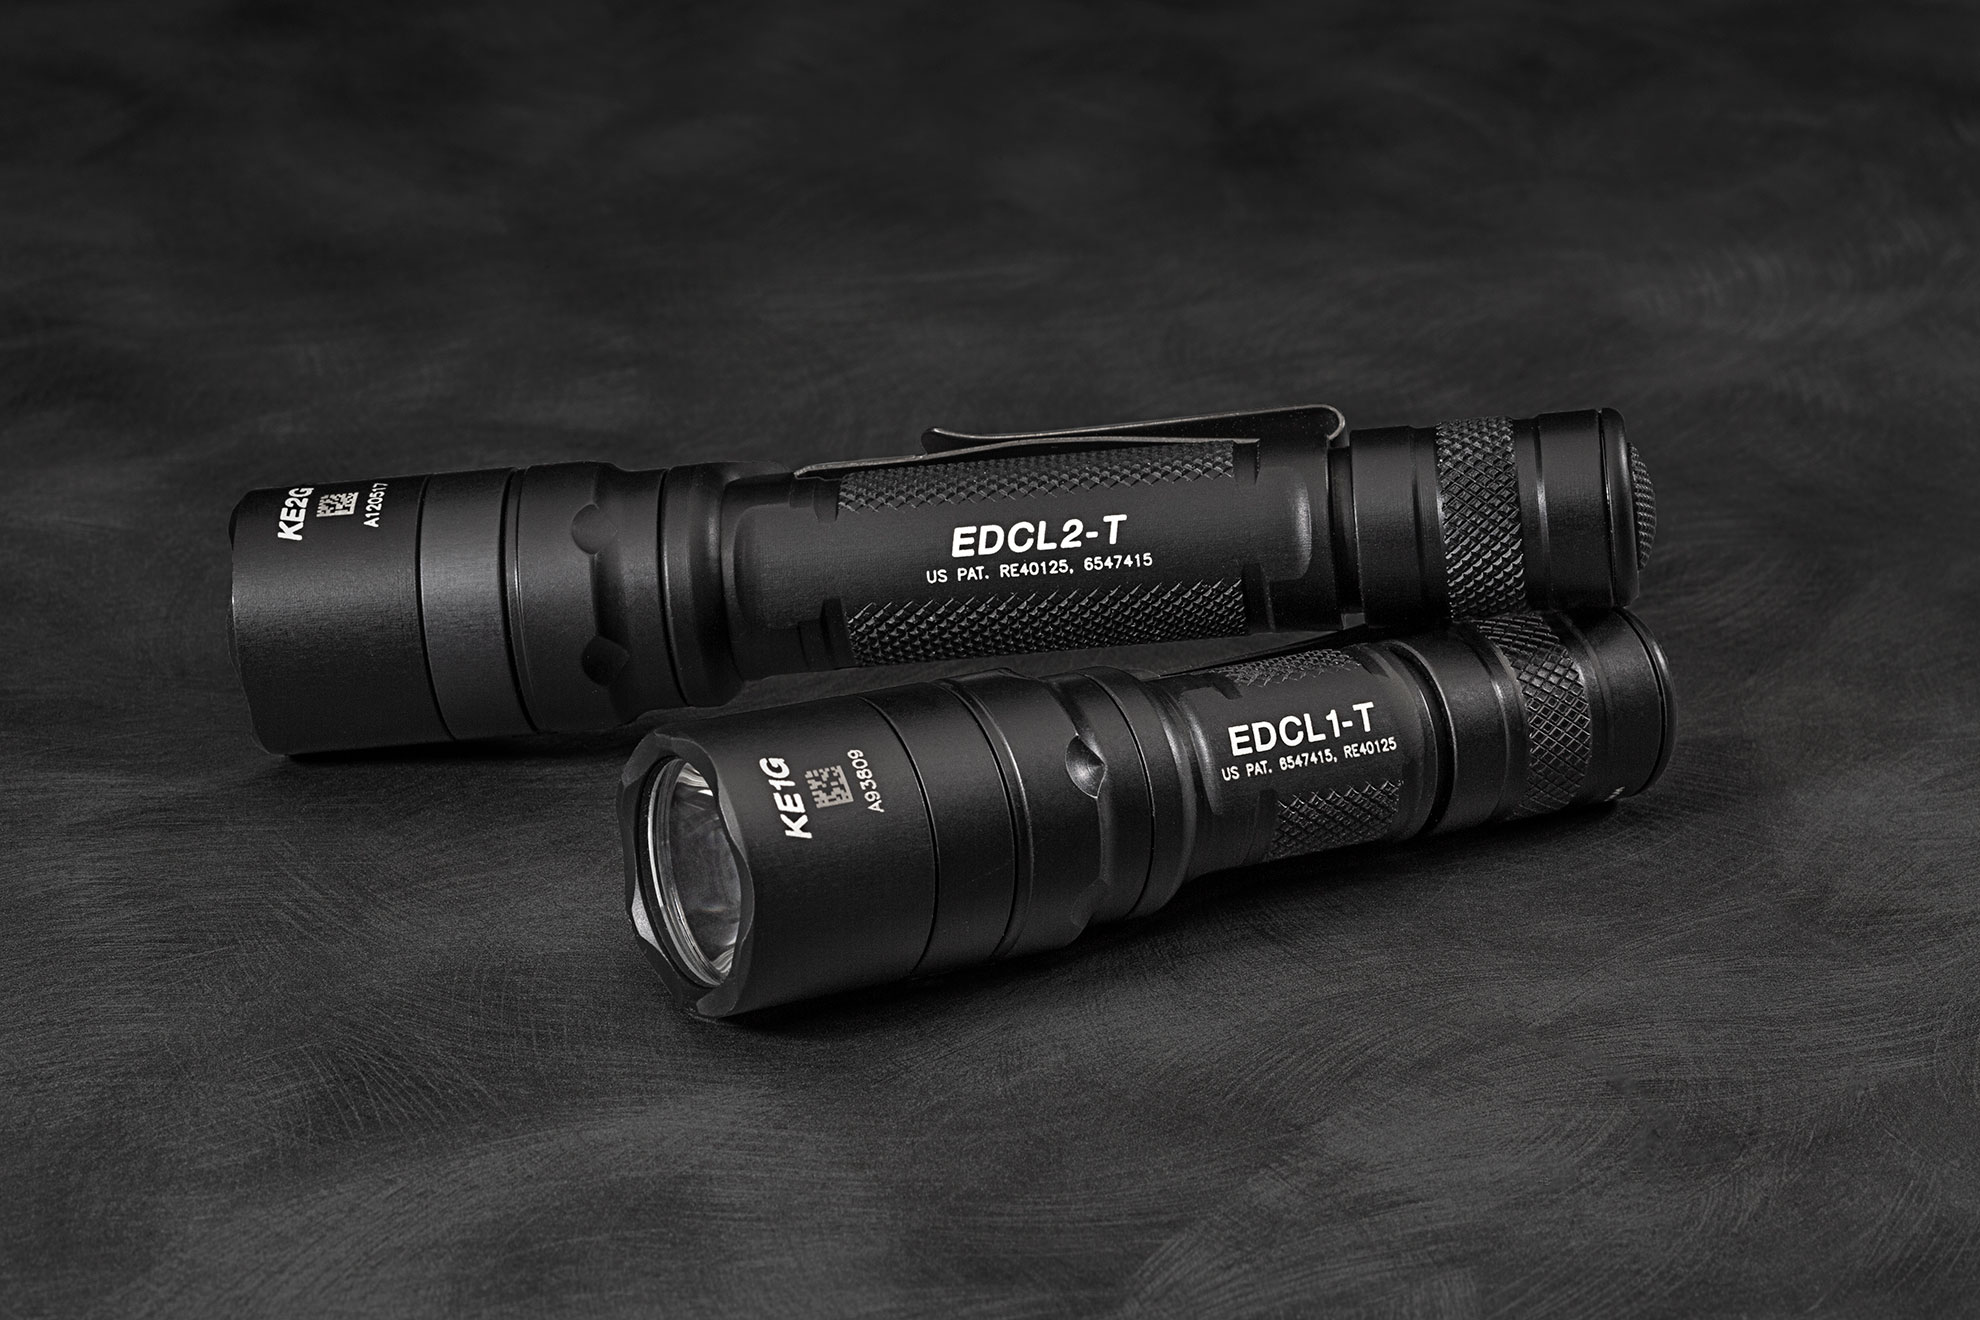 SureFire EDCL1-T_and_EDCL2-T flashlights